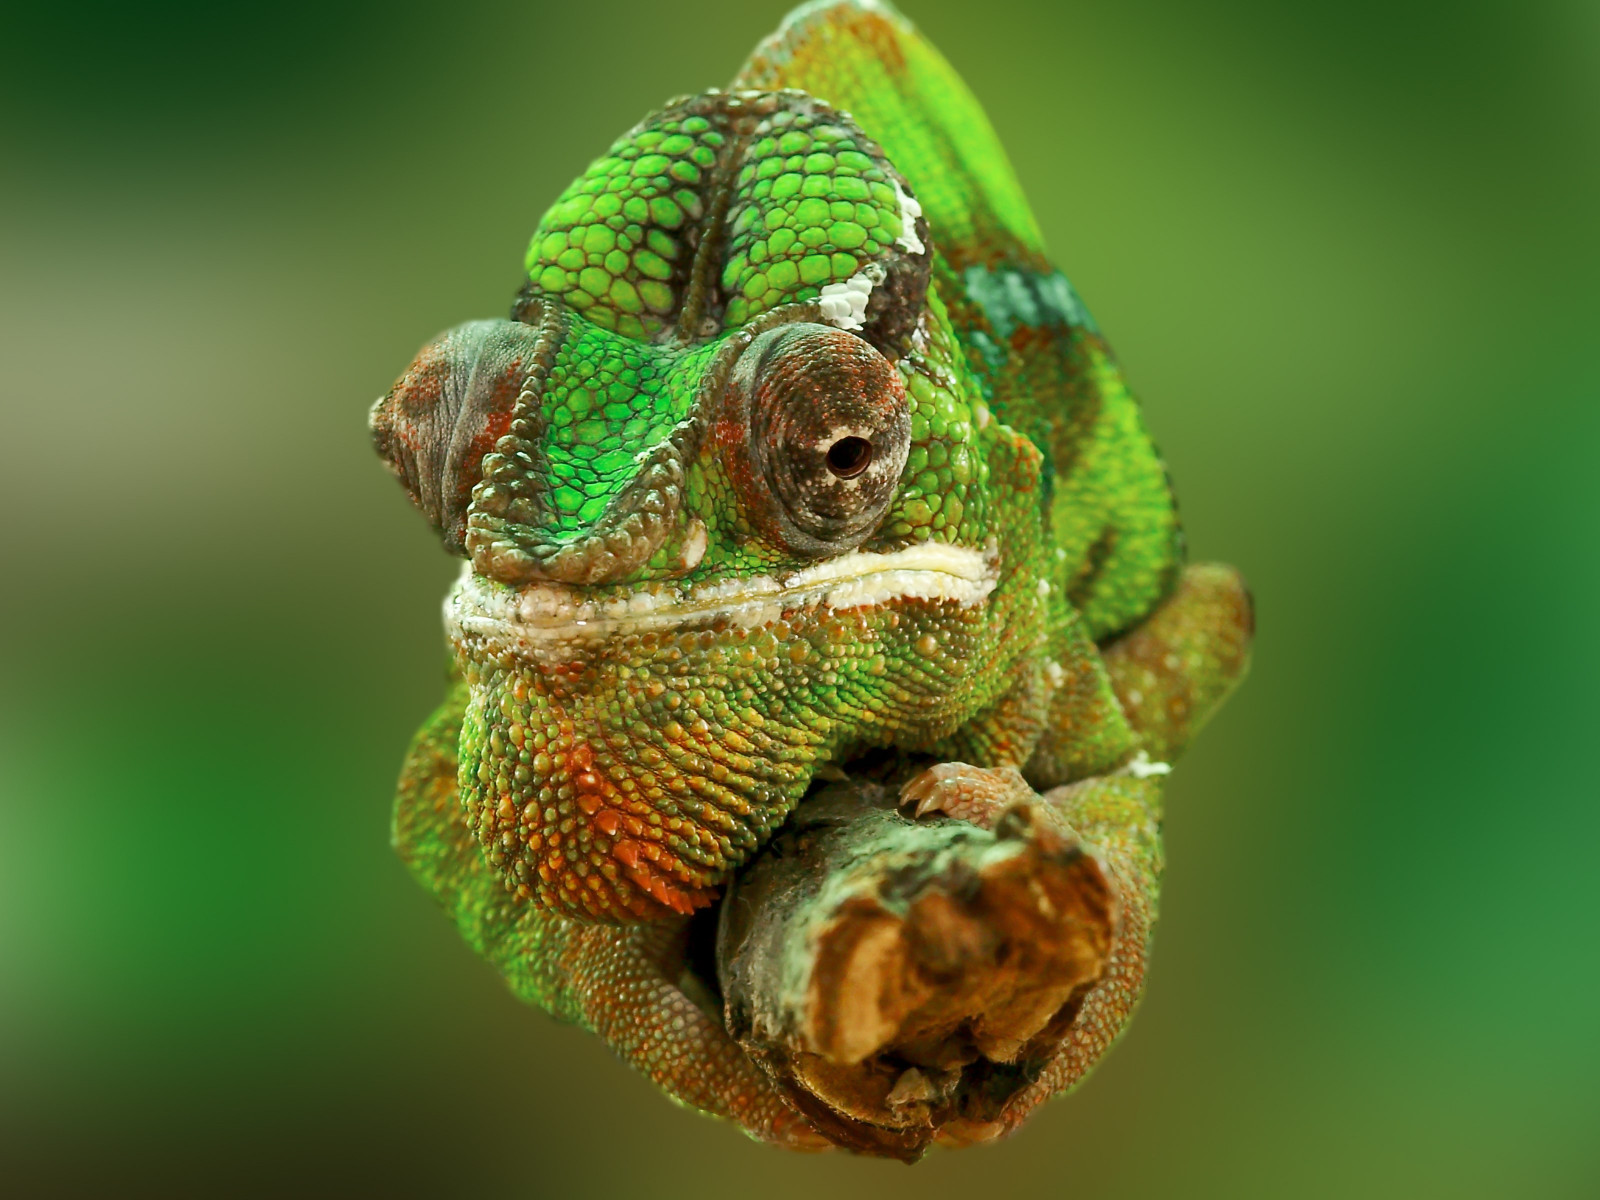 Portrait of a chameleon wallpaper 1600x1200